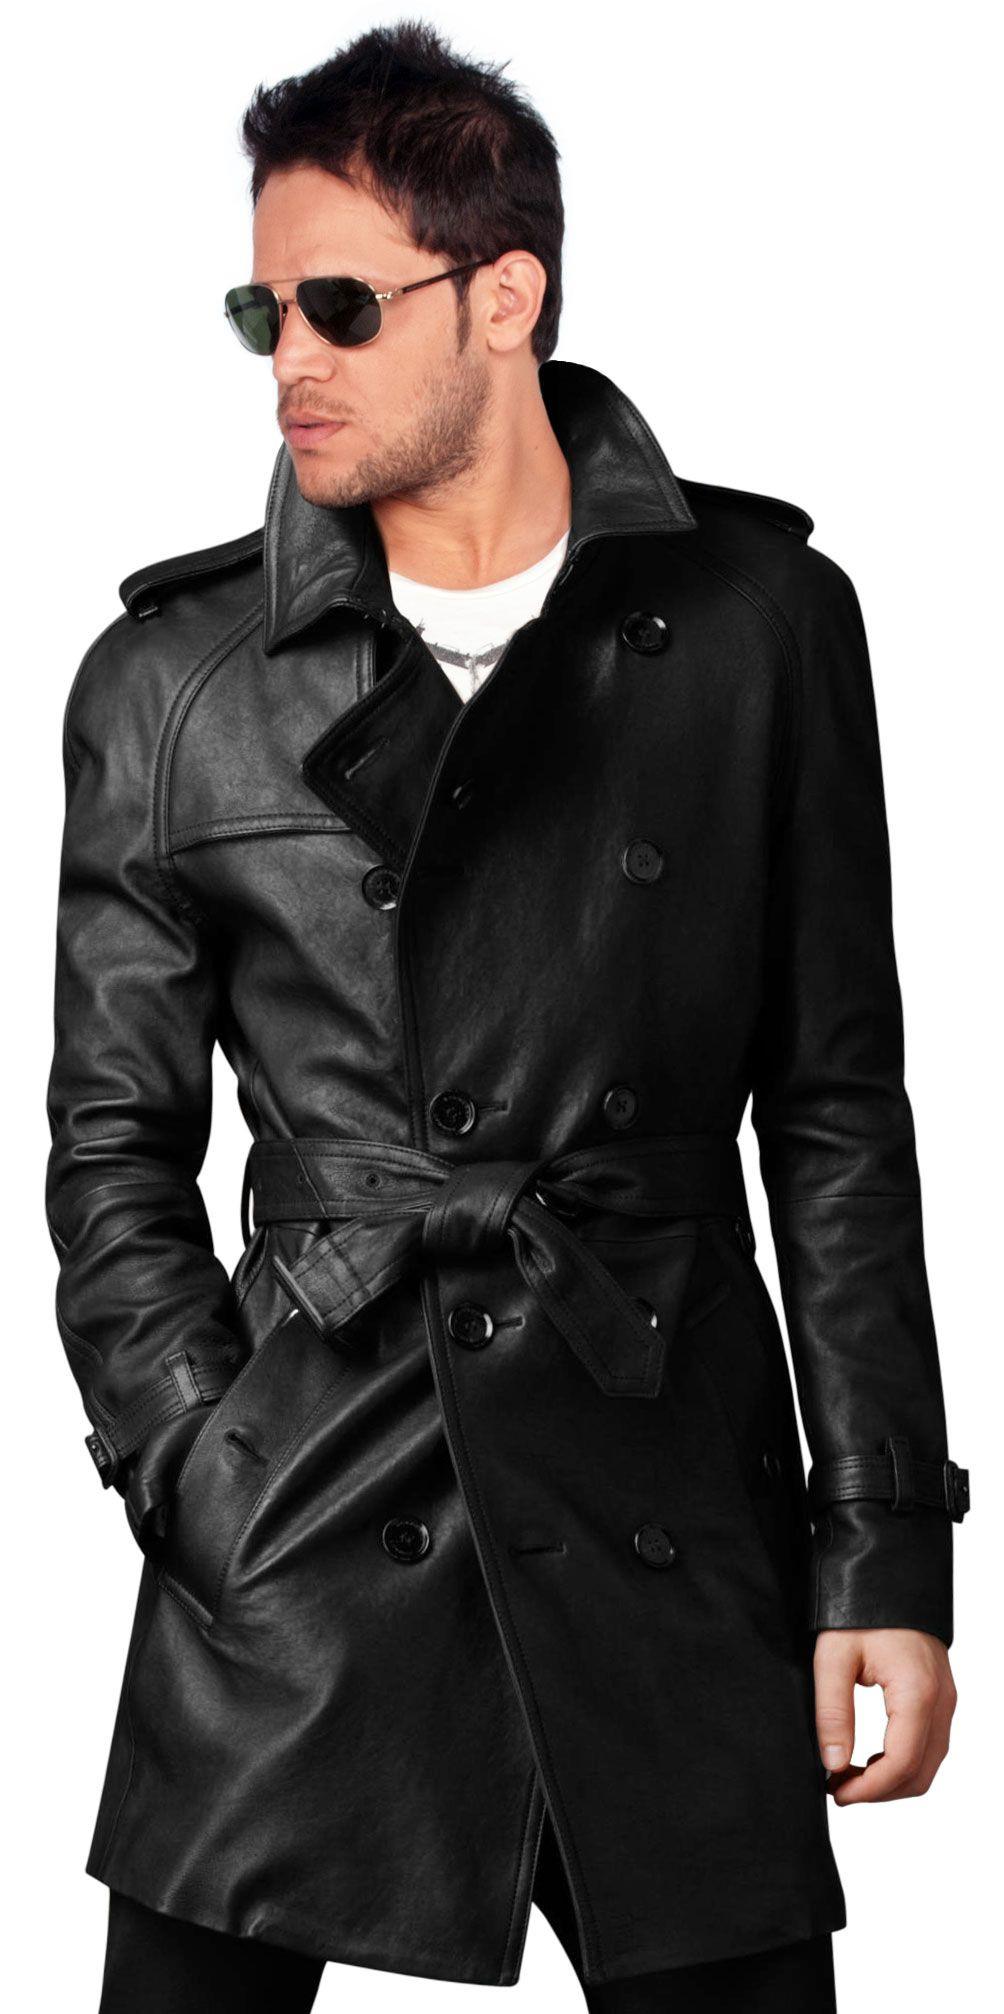 leather trench coat style homme leather trench coat mens leather trench coat et long. Black Bedroom Furniture Sets. Home Design Ideas